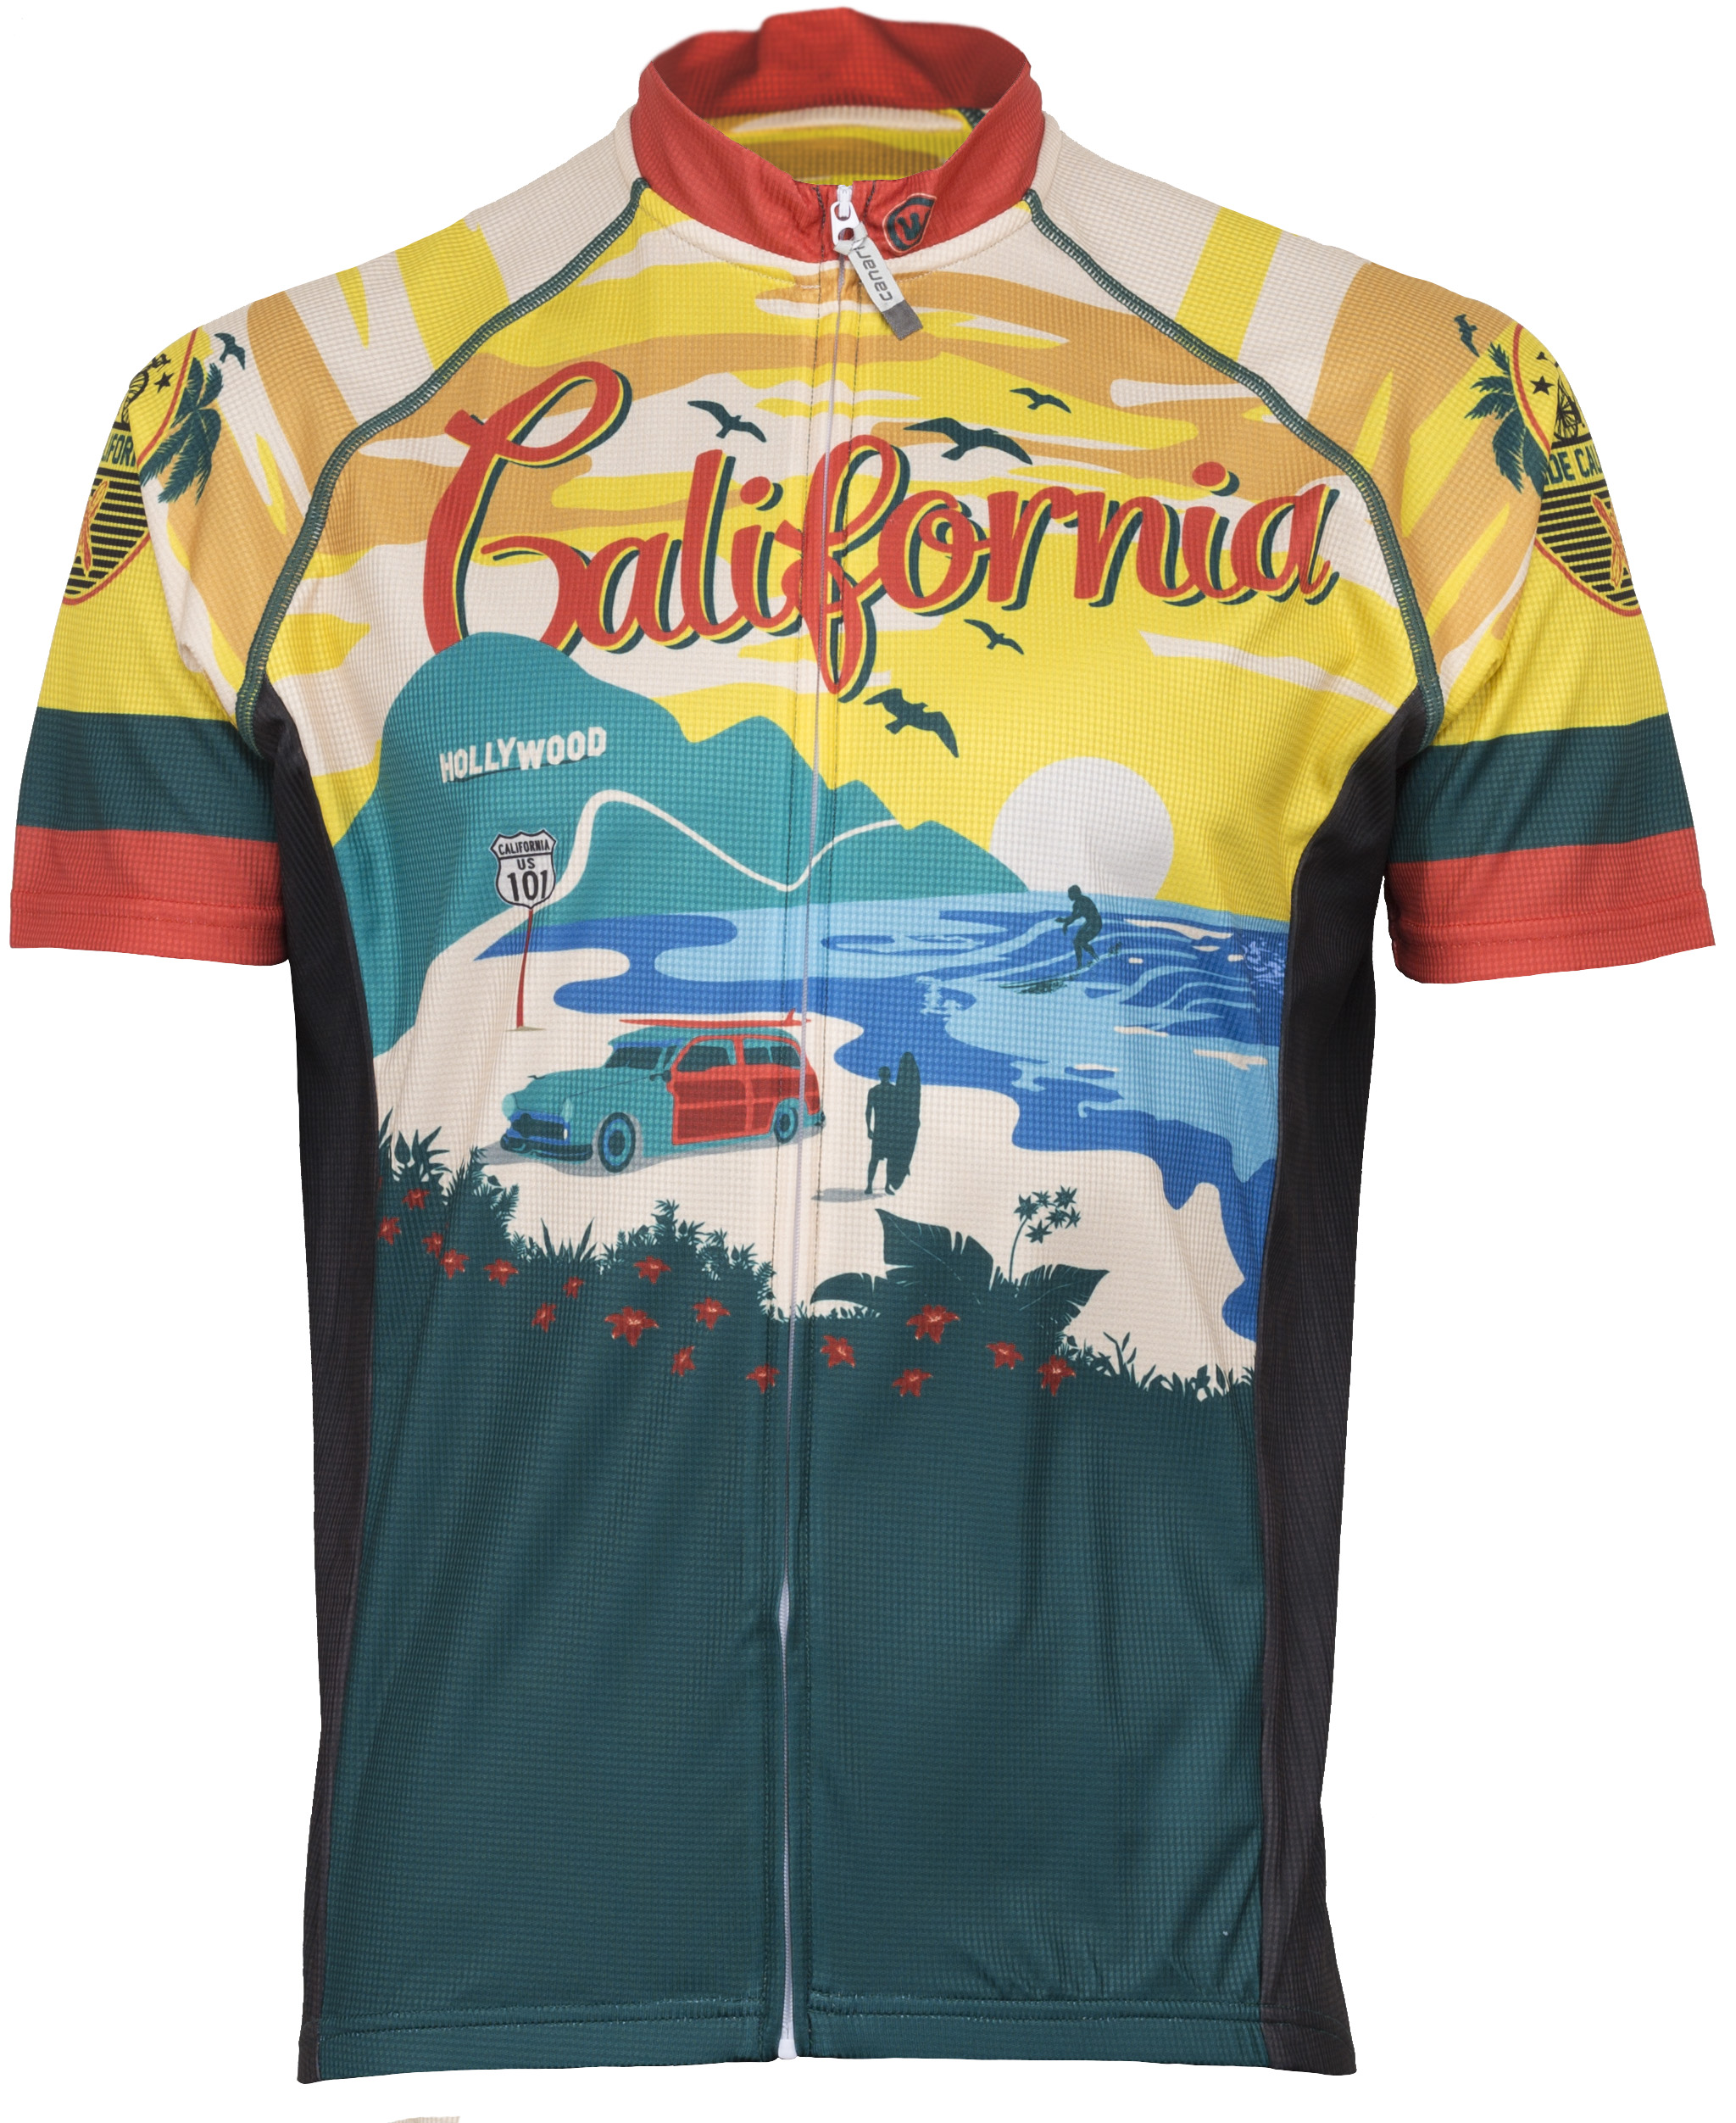 Retro Jerseys Canari Men S California Retro Jersey